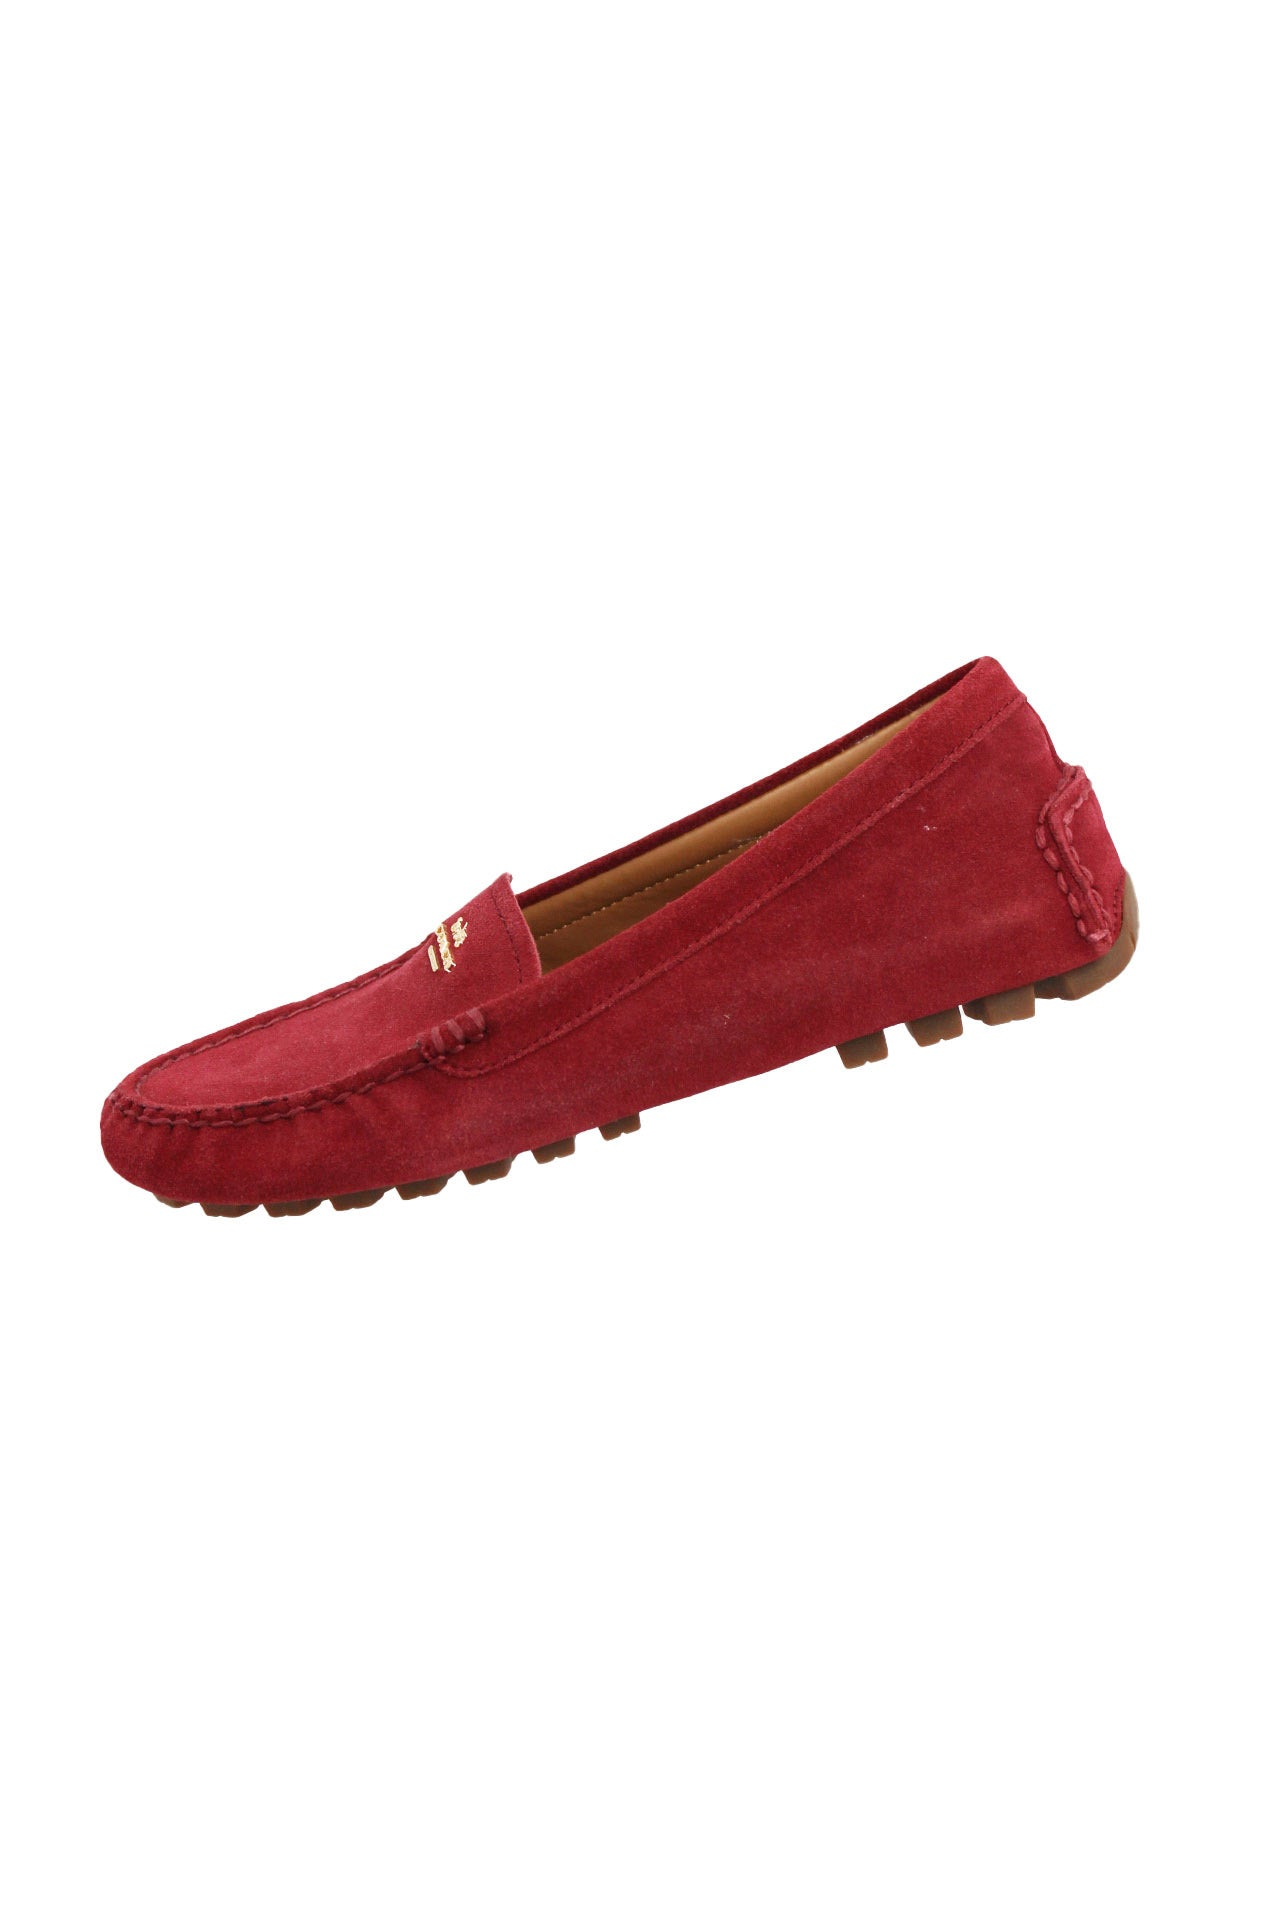 description: coach red moccasins. featuring gold metal coach logo.